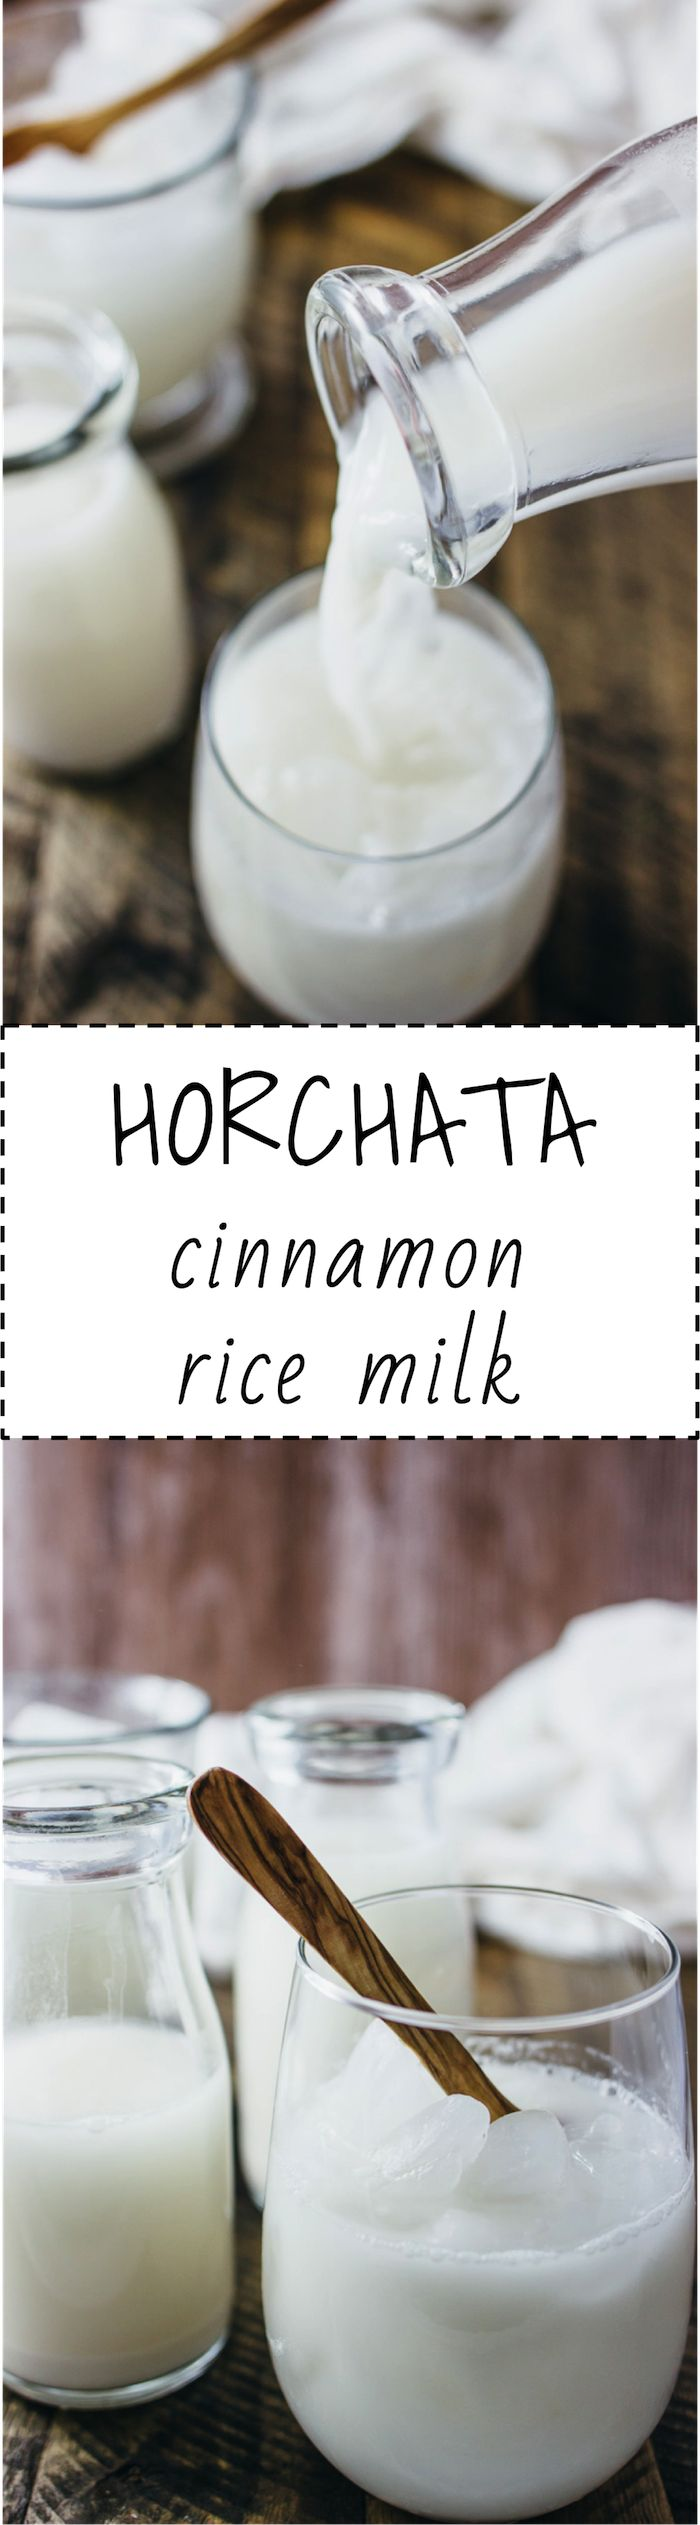 Horchata: cinnamon rice milk - A Mexican creamy rice milk with blended cinnamon, vanilla, and honey that is perfect for a hot, summery day. This is so refreshing to drink when served over ice cubes. - savorytooth.com via @savory_tooth